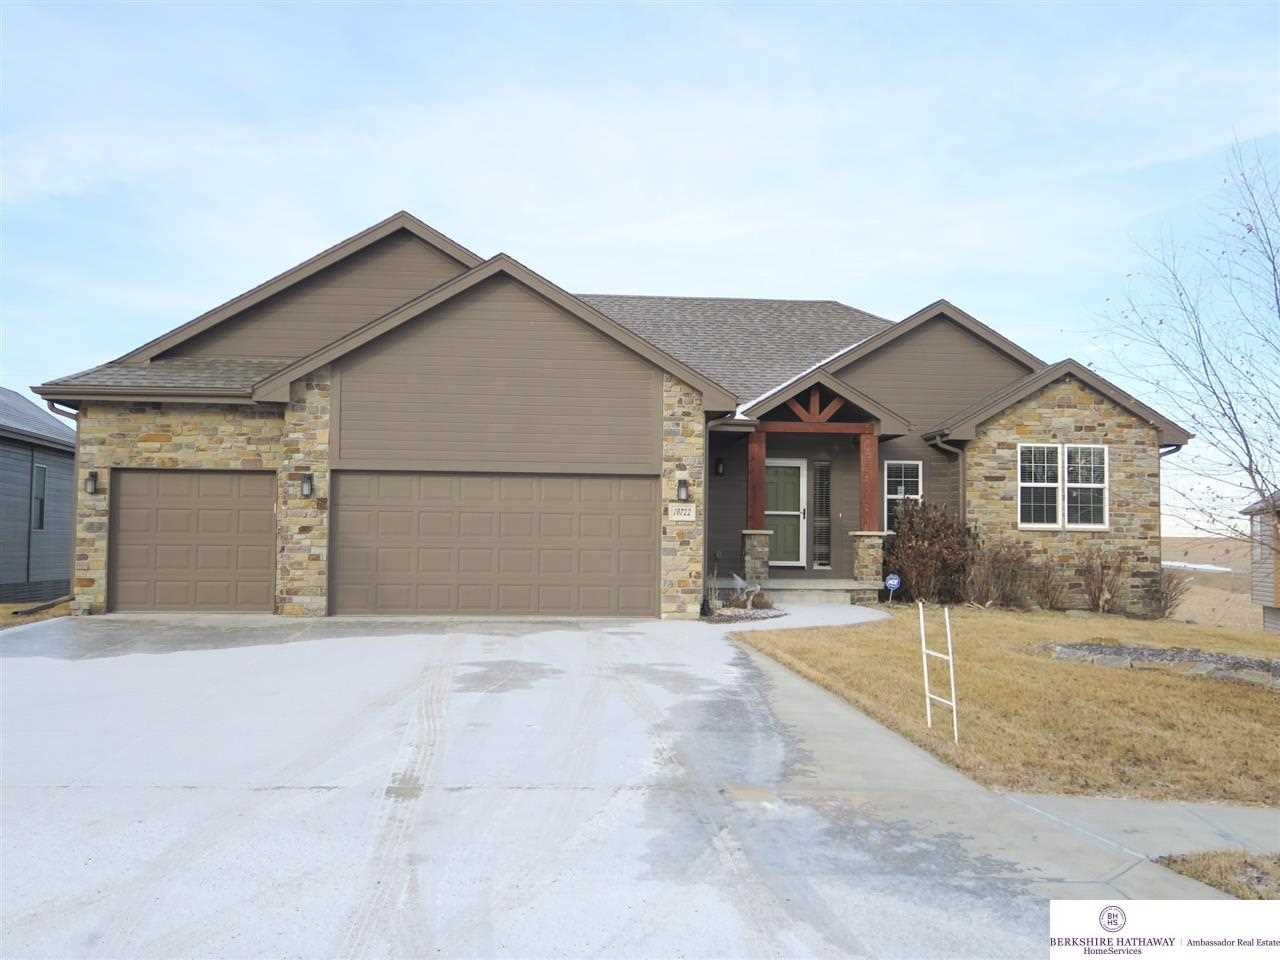 10722 S 215 Gretna, NE 68028 | MLS 21802552 Photo 1